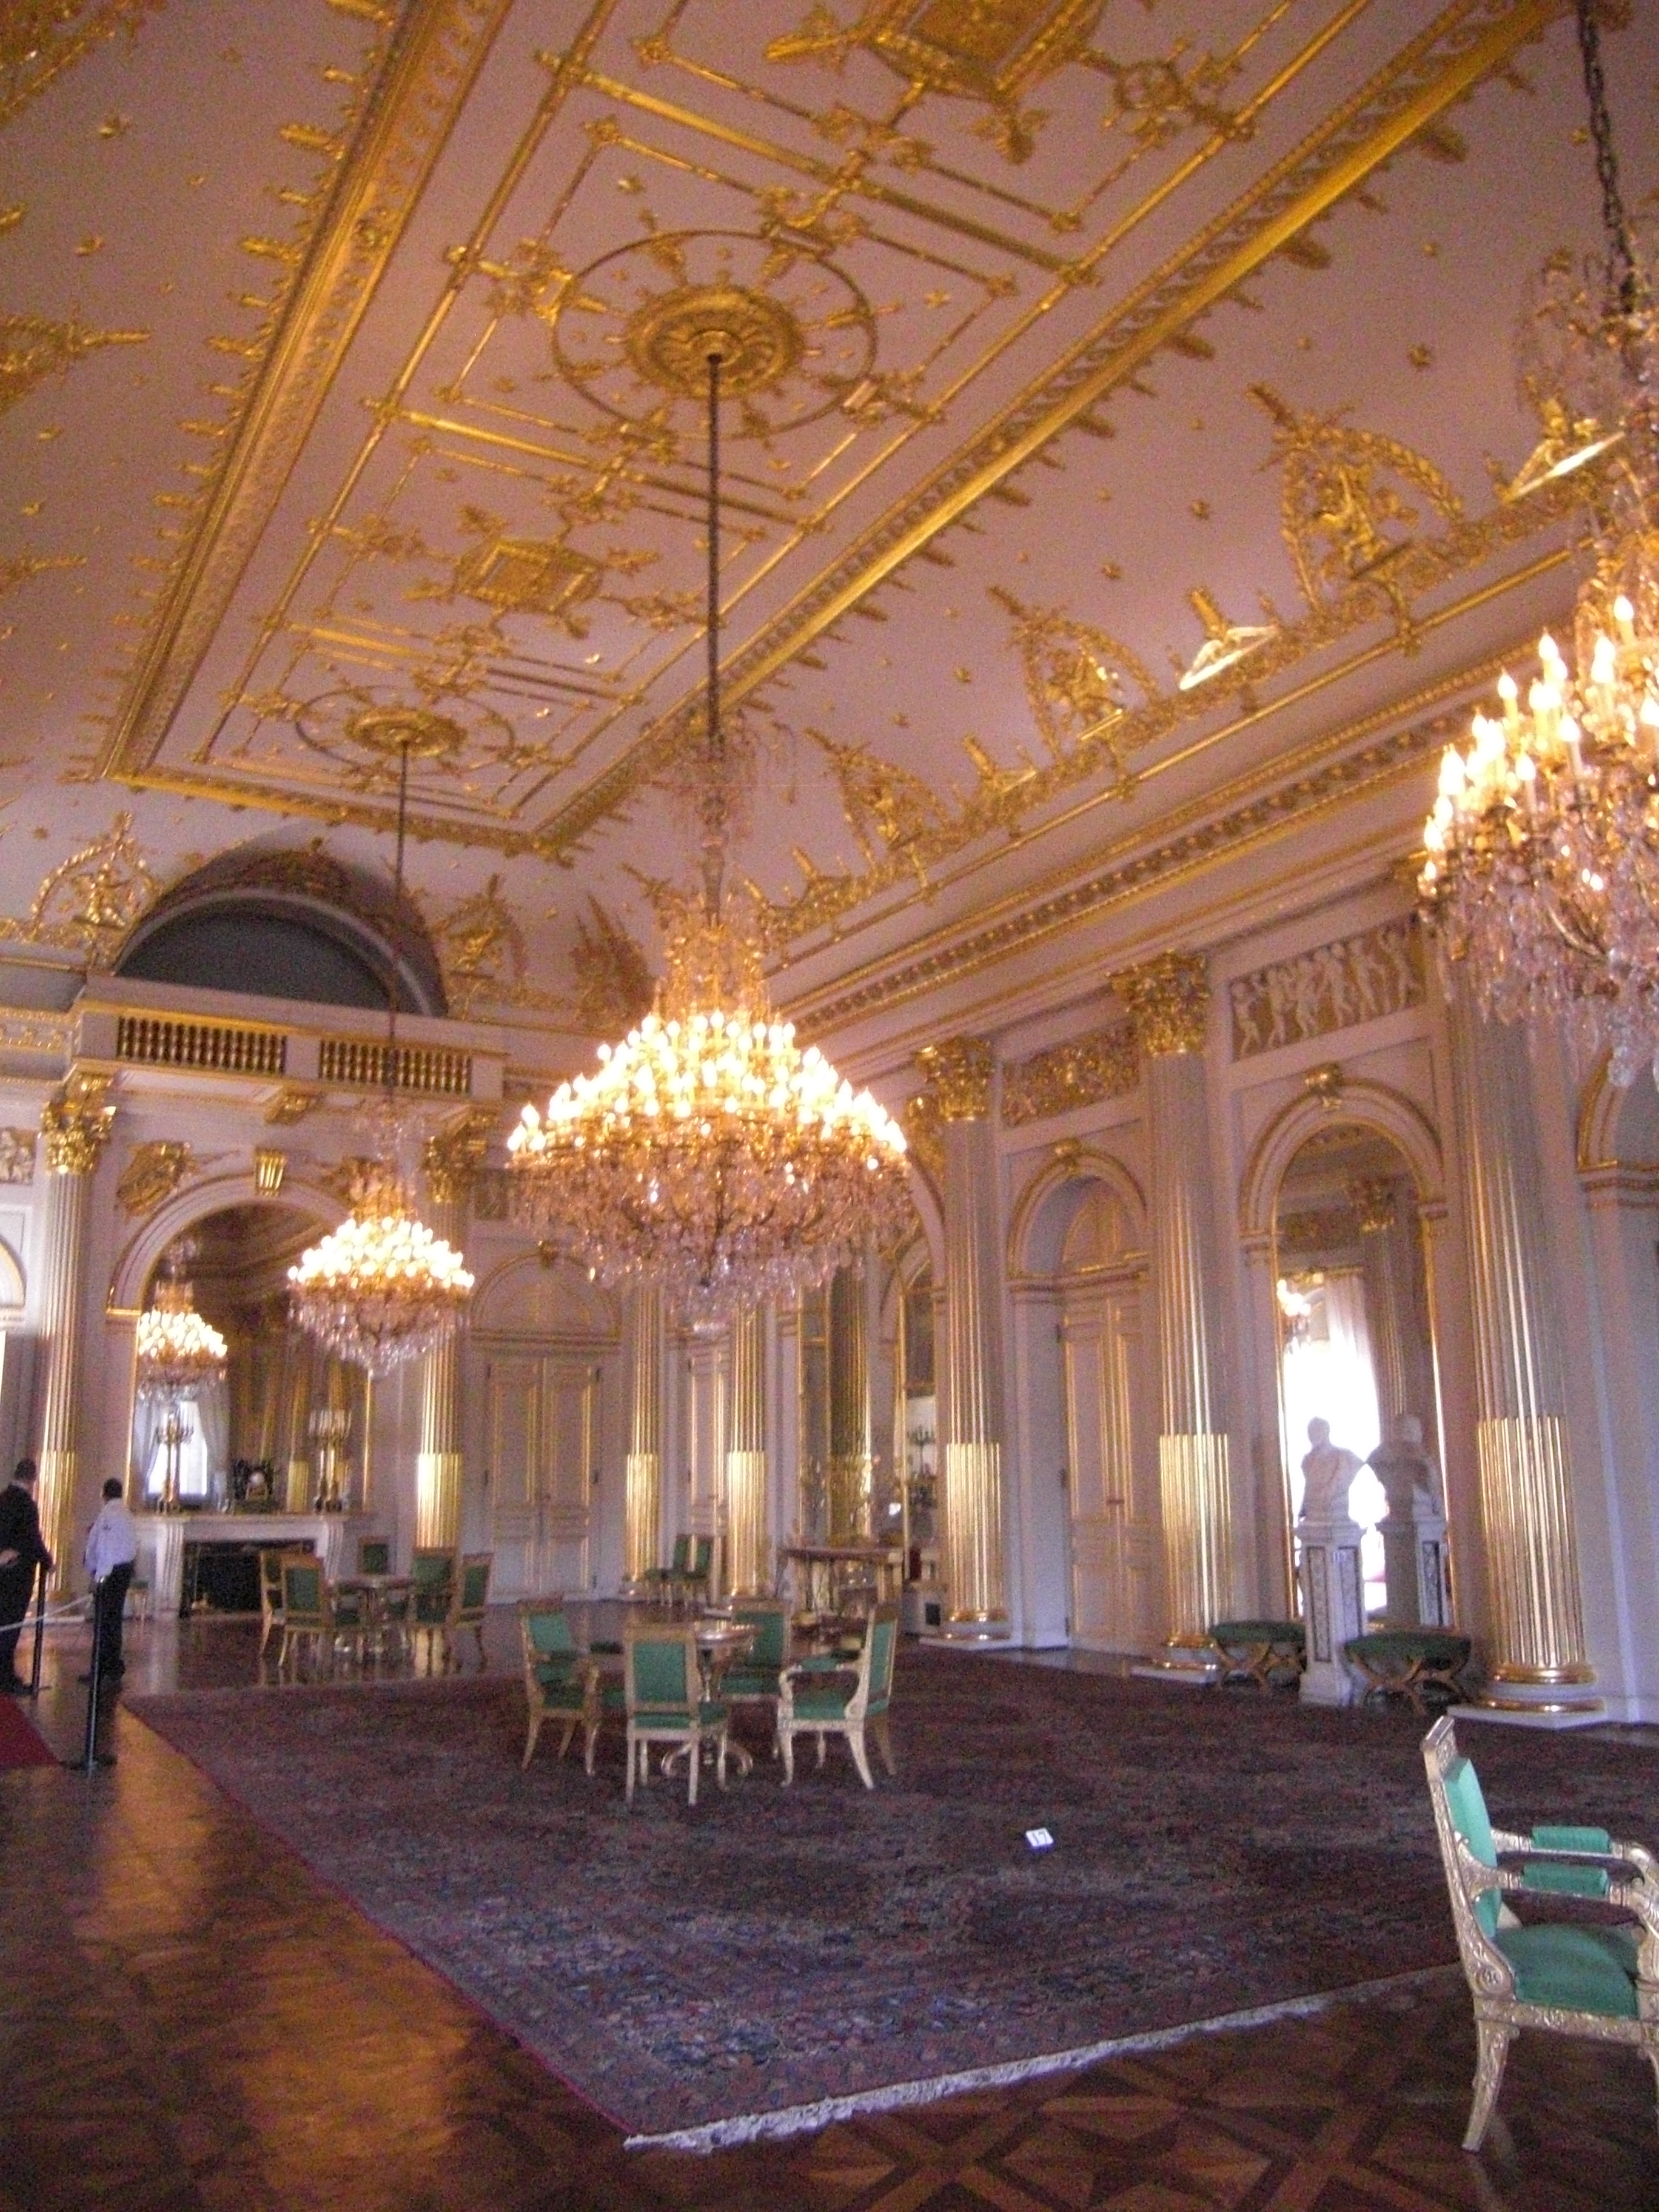 The Royal Palace of Brussels | Unofficial Royalty